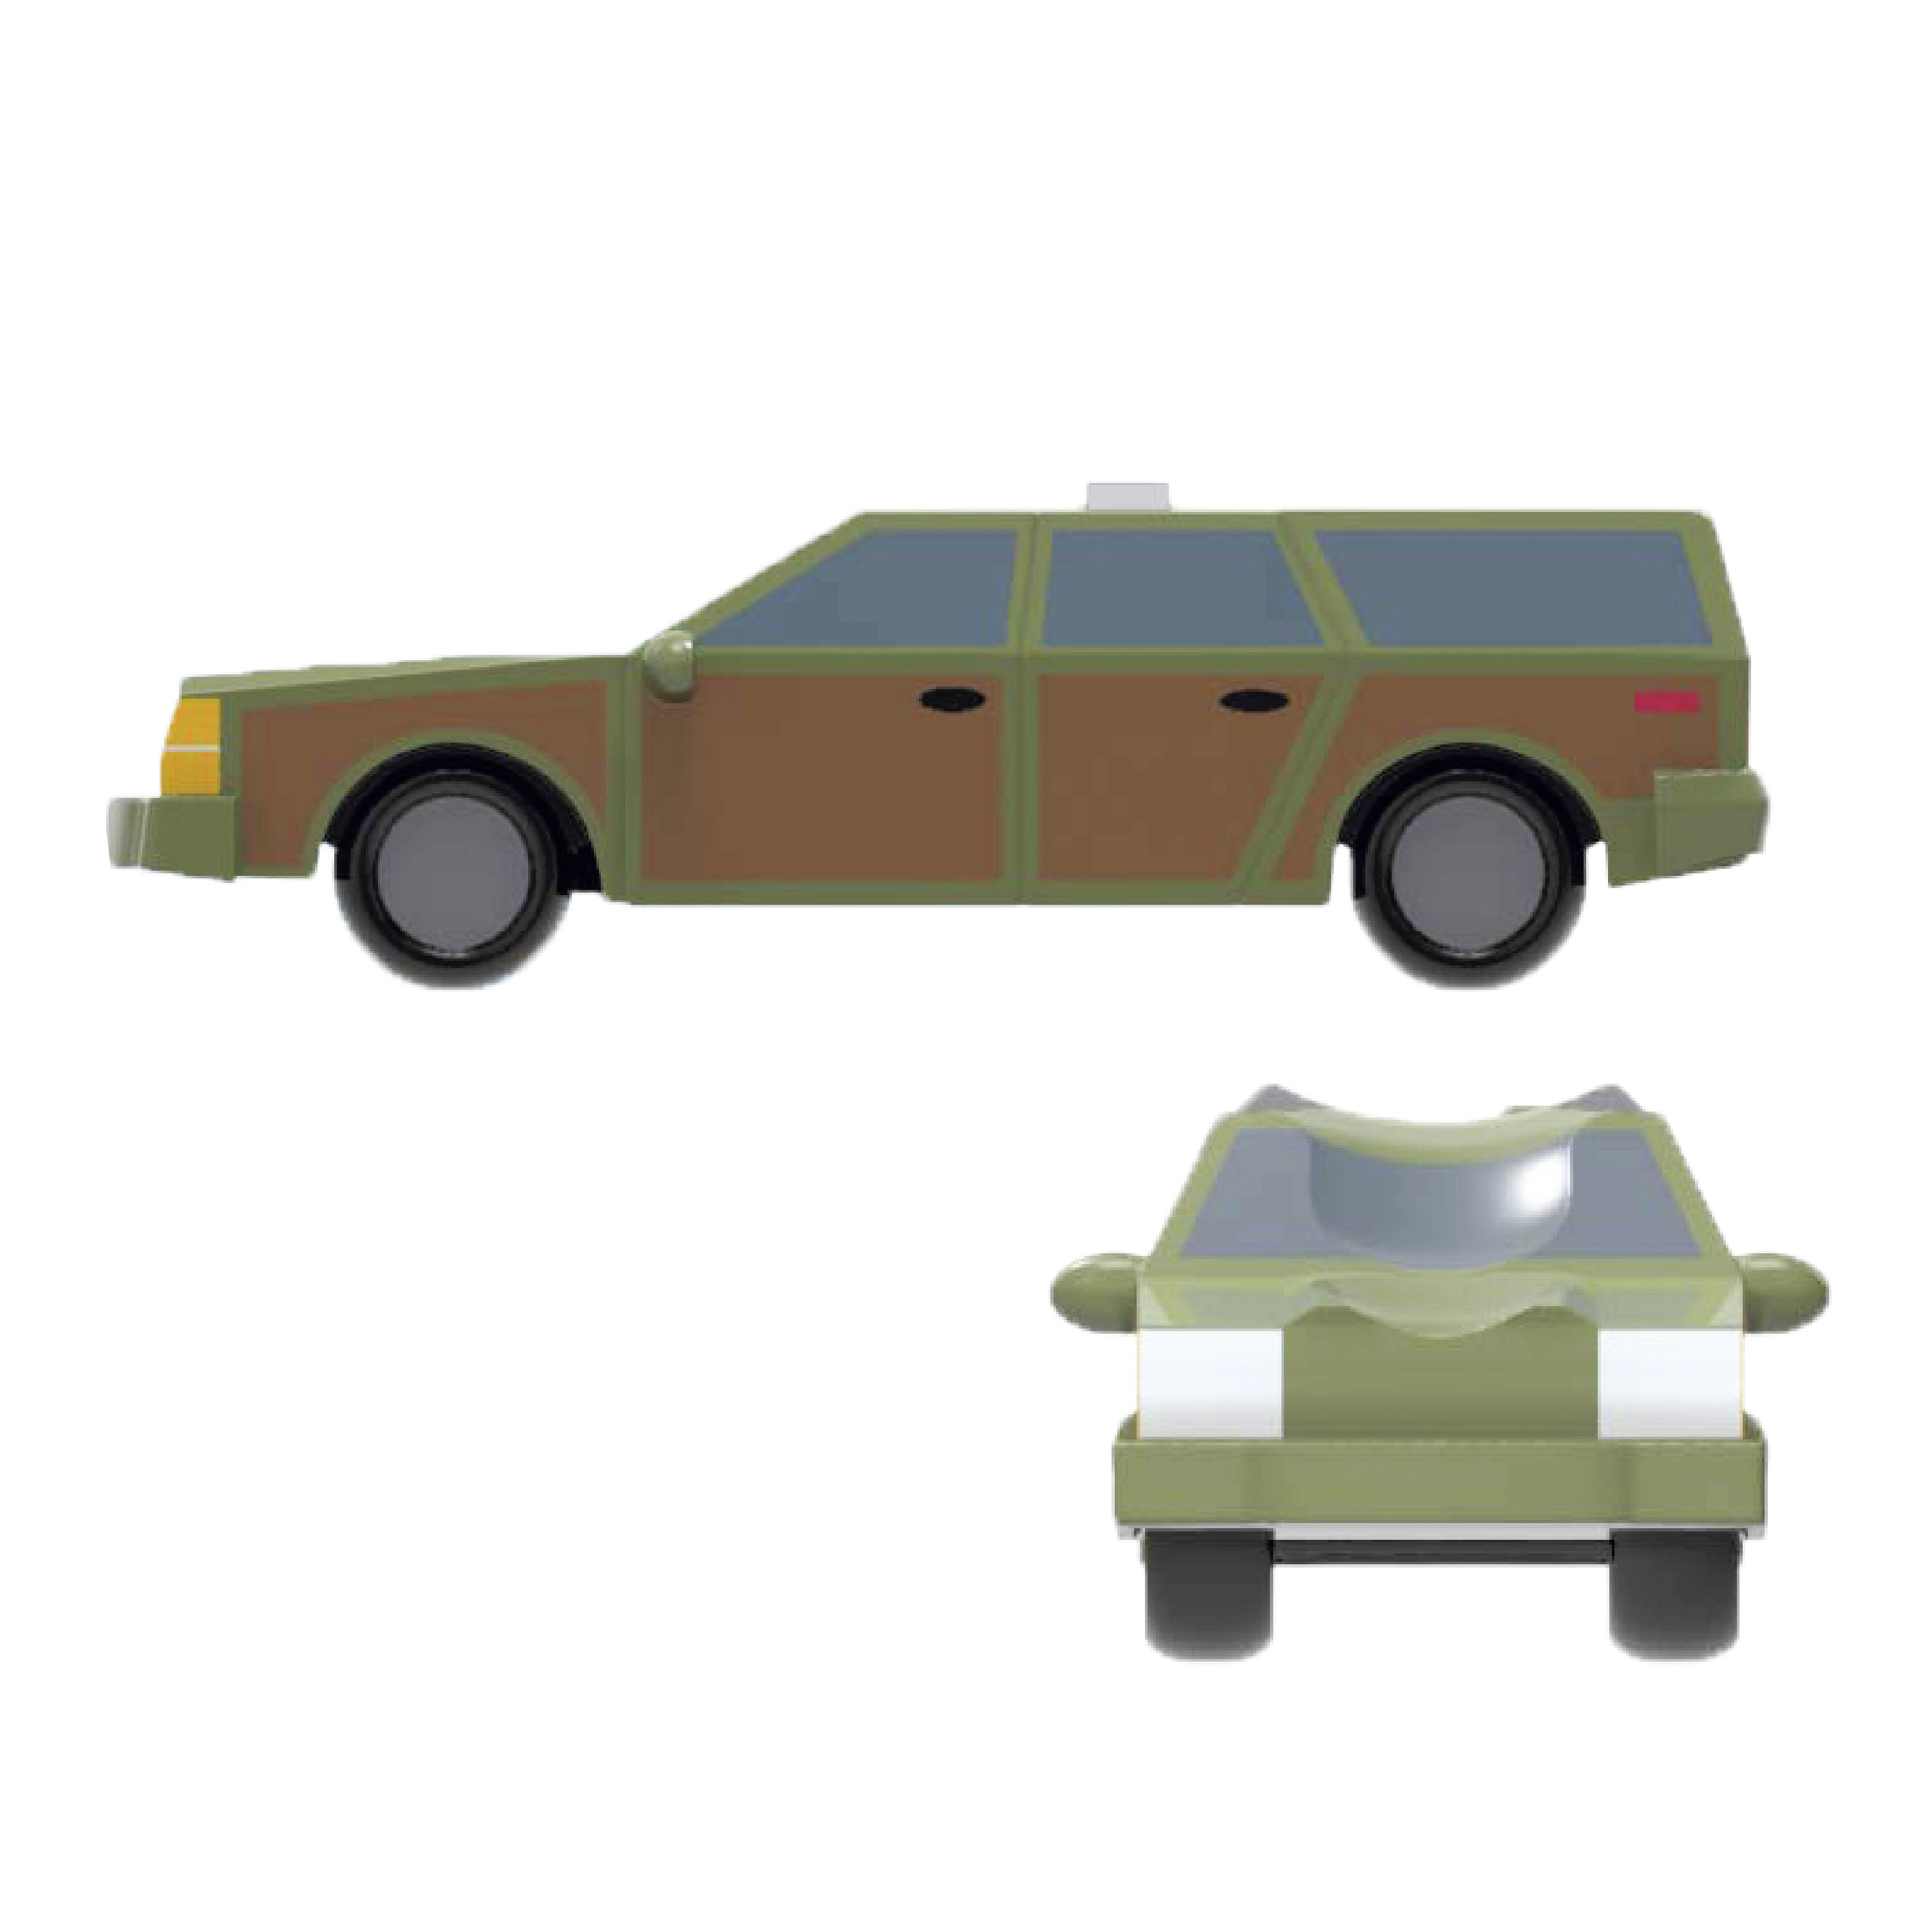 National Lampoon's Christmas Vacation Salt and Pepper Shaker Set, Griswold Family Tree & Car, 2-piece set slideshow image 7